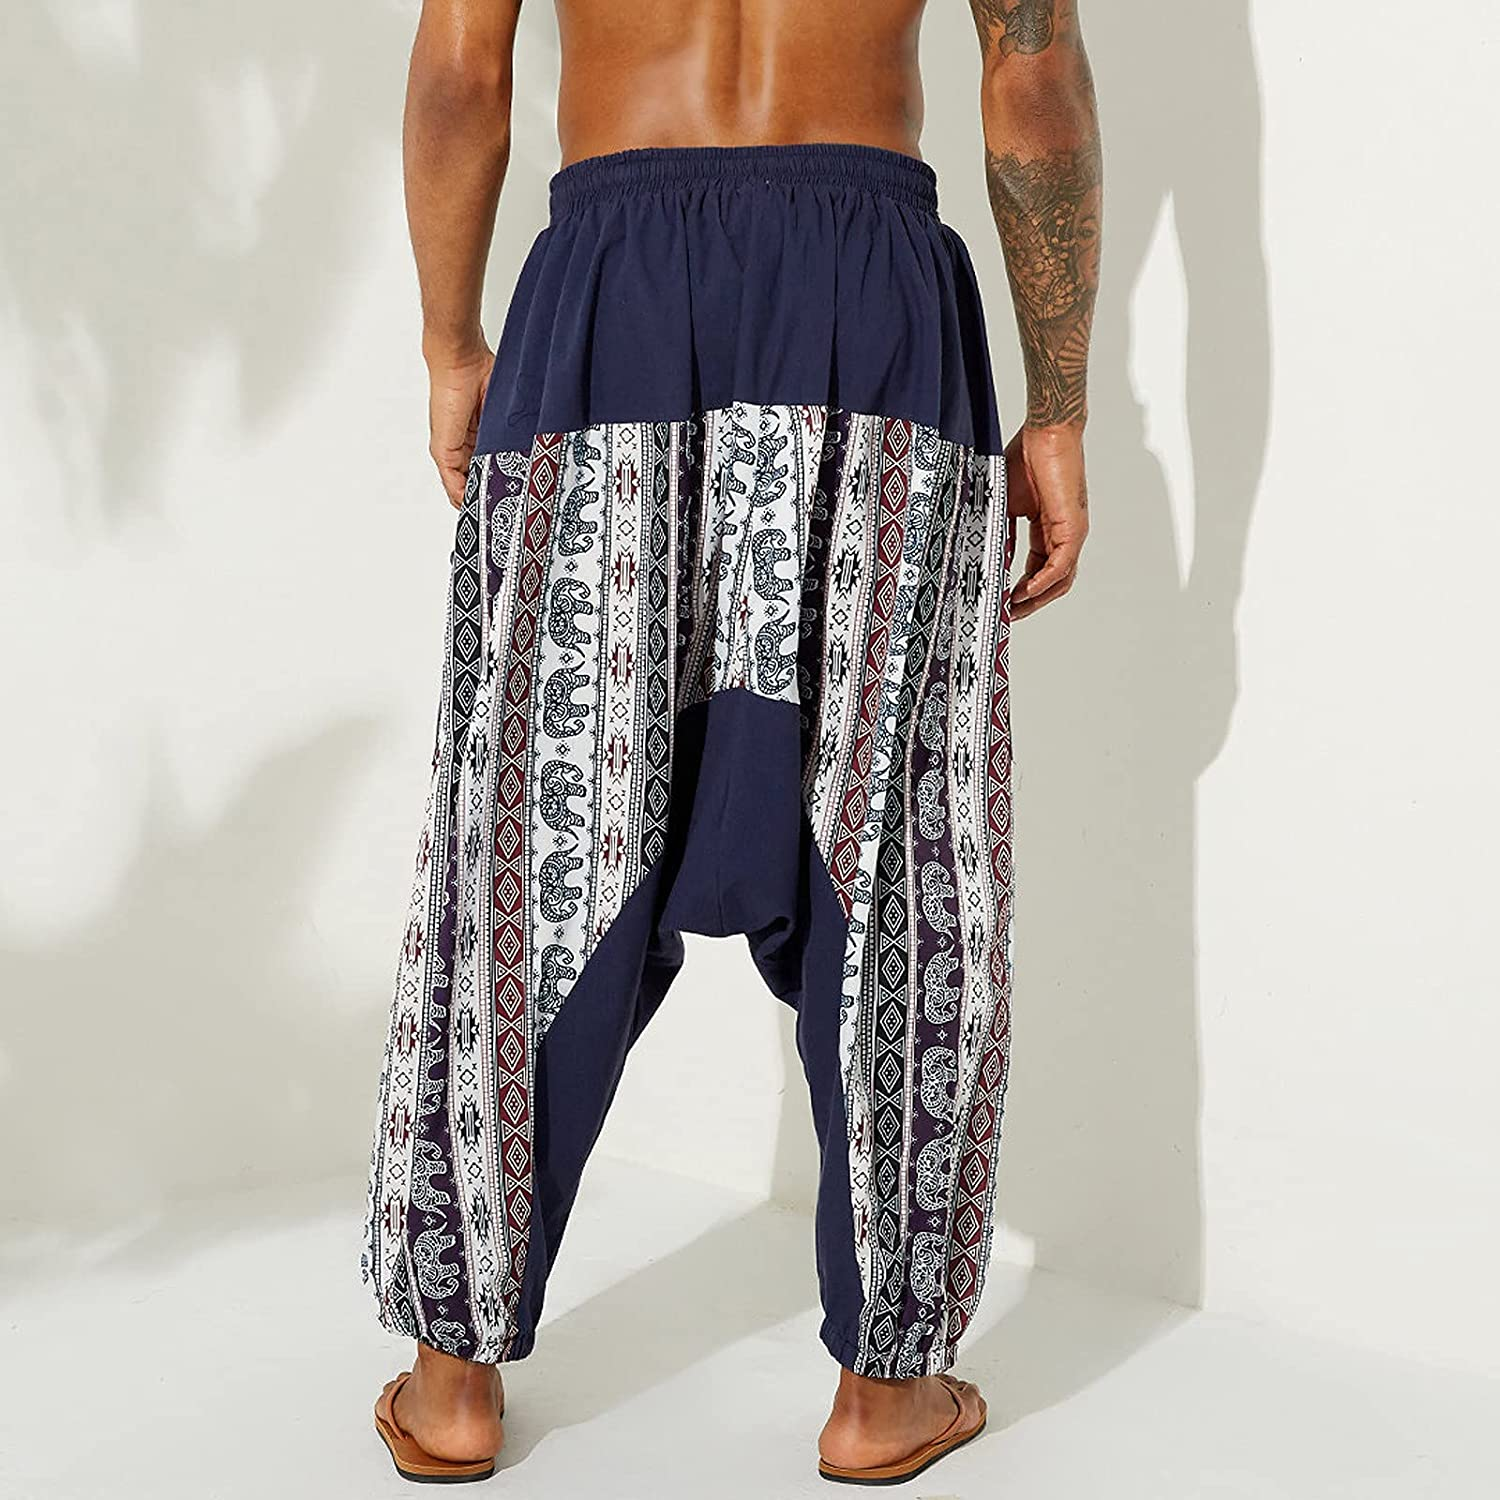 Huangse Men's Casual Workout Athletic Pants Plus Size Printed Wide Leg Ethnic Style Pants with Elastic Waistband